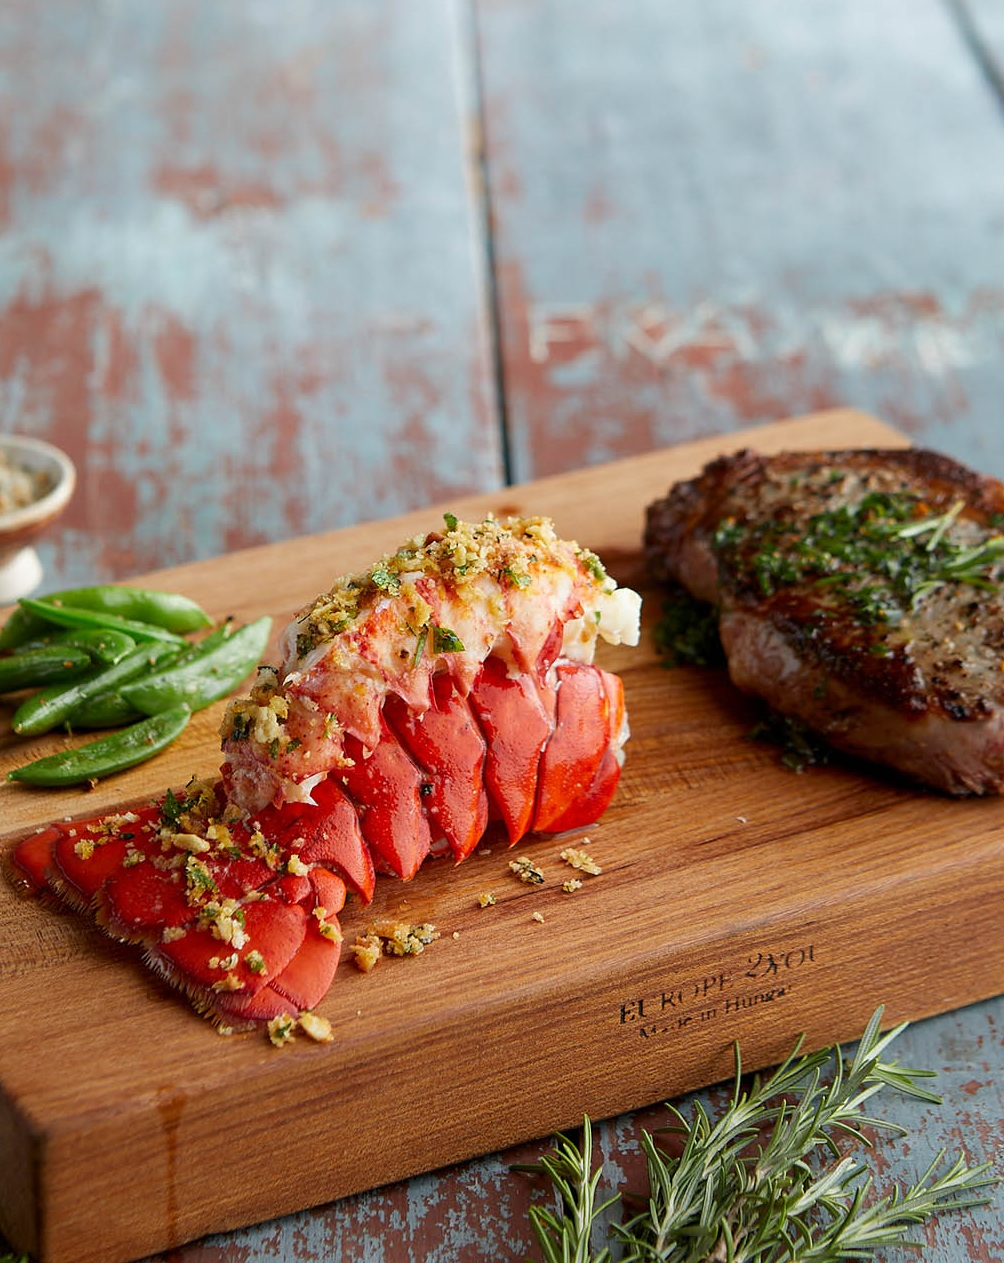 Cold Cracked Lobster, pressure-extracted raw lobster meat, shipped nationwide, by Ready Seafood, Portland, Maine